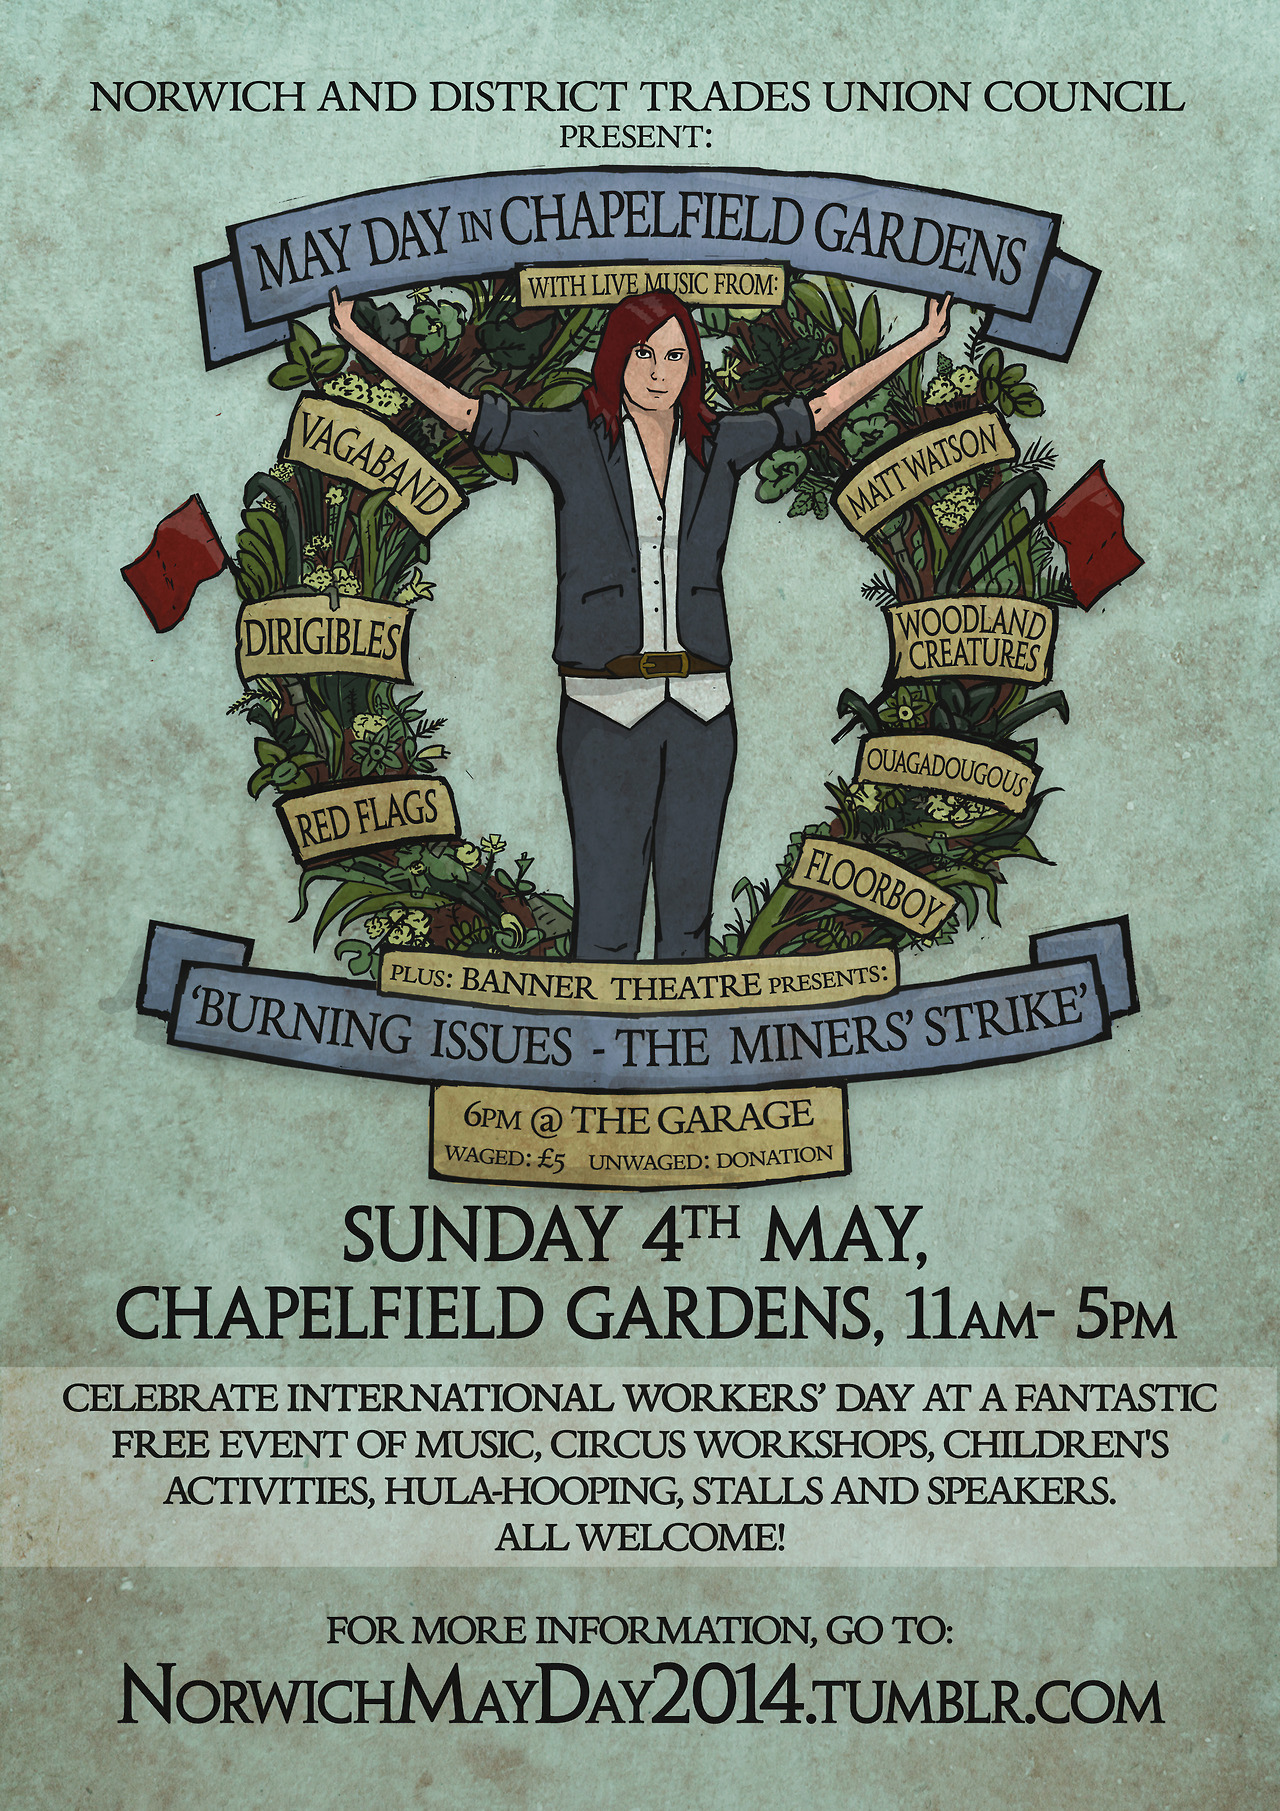 May Day 2014 in Chapelfield Gardents Front